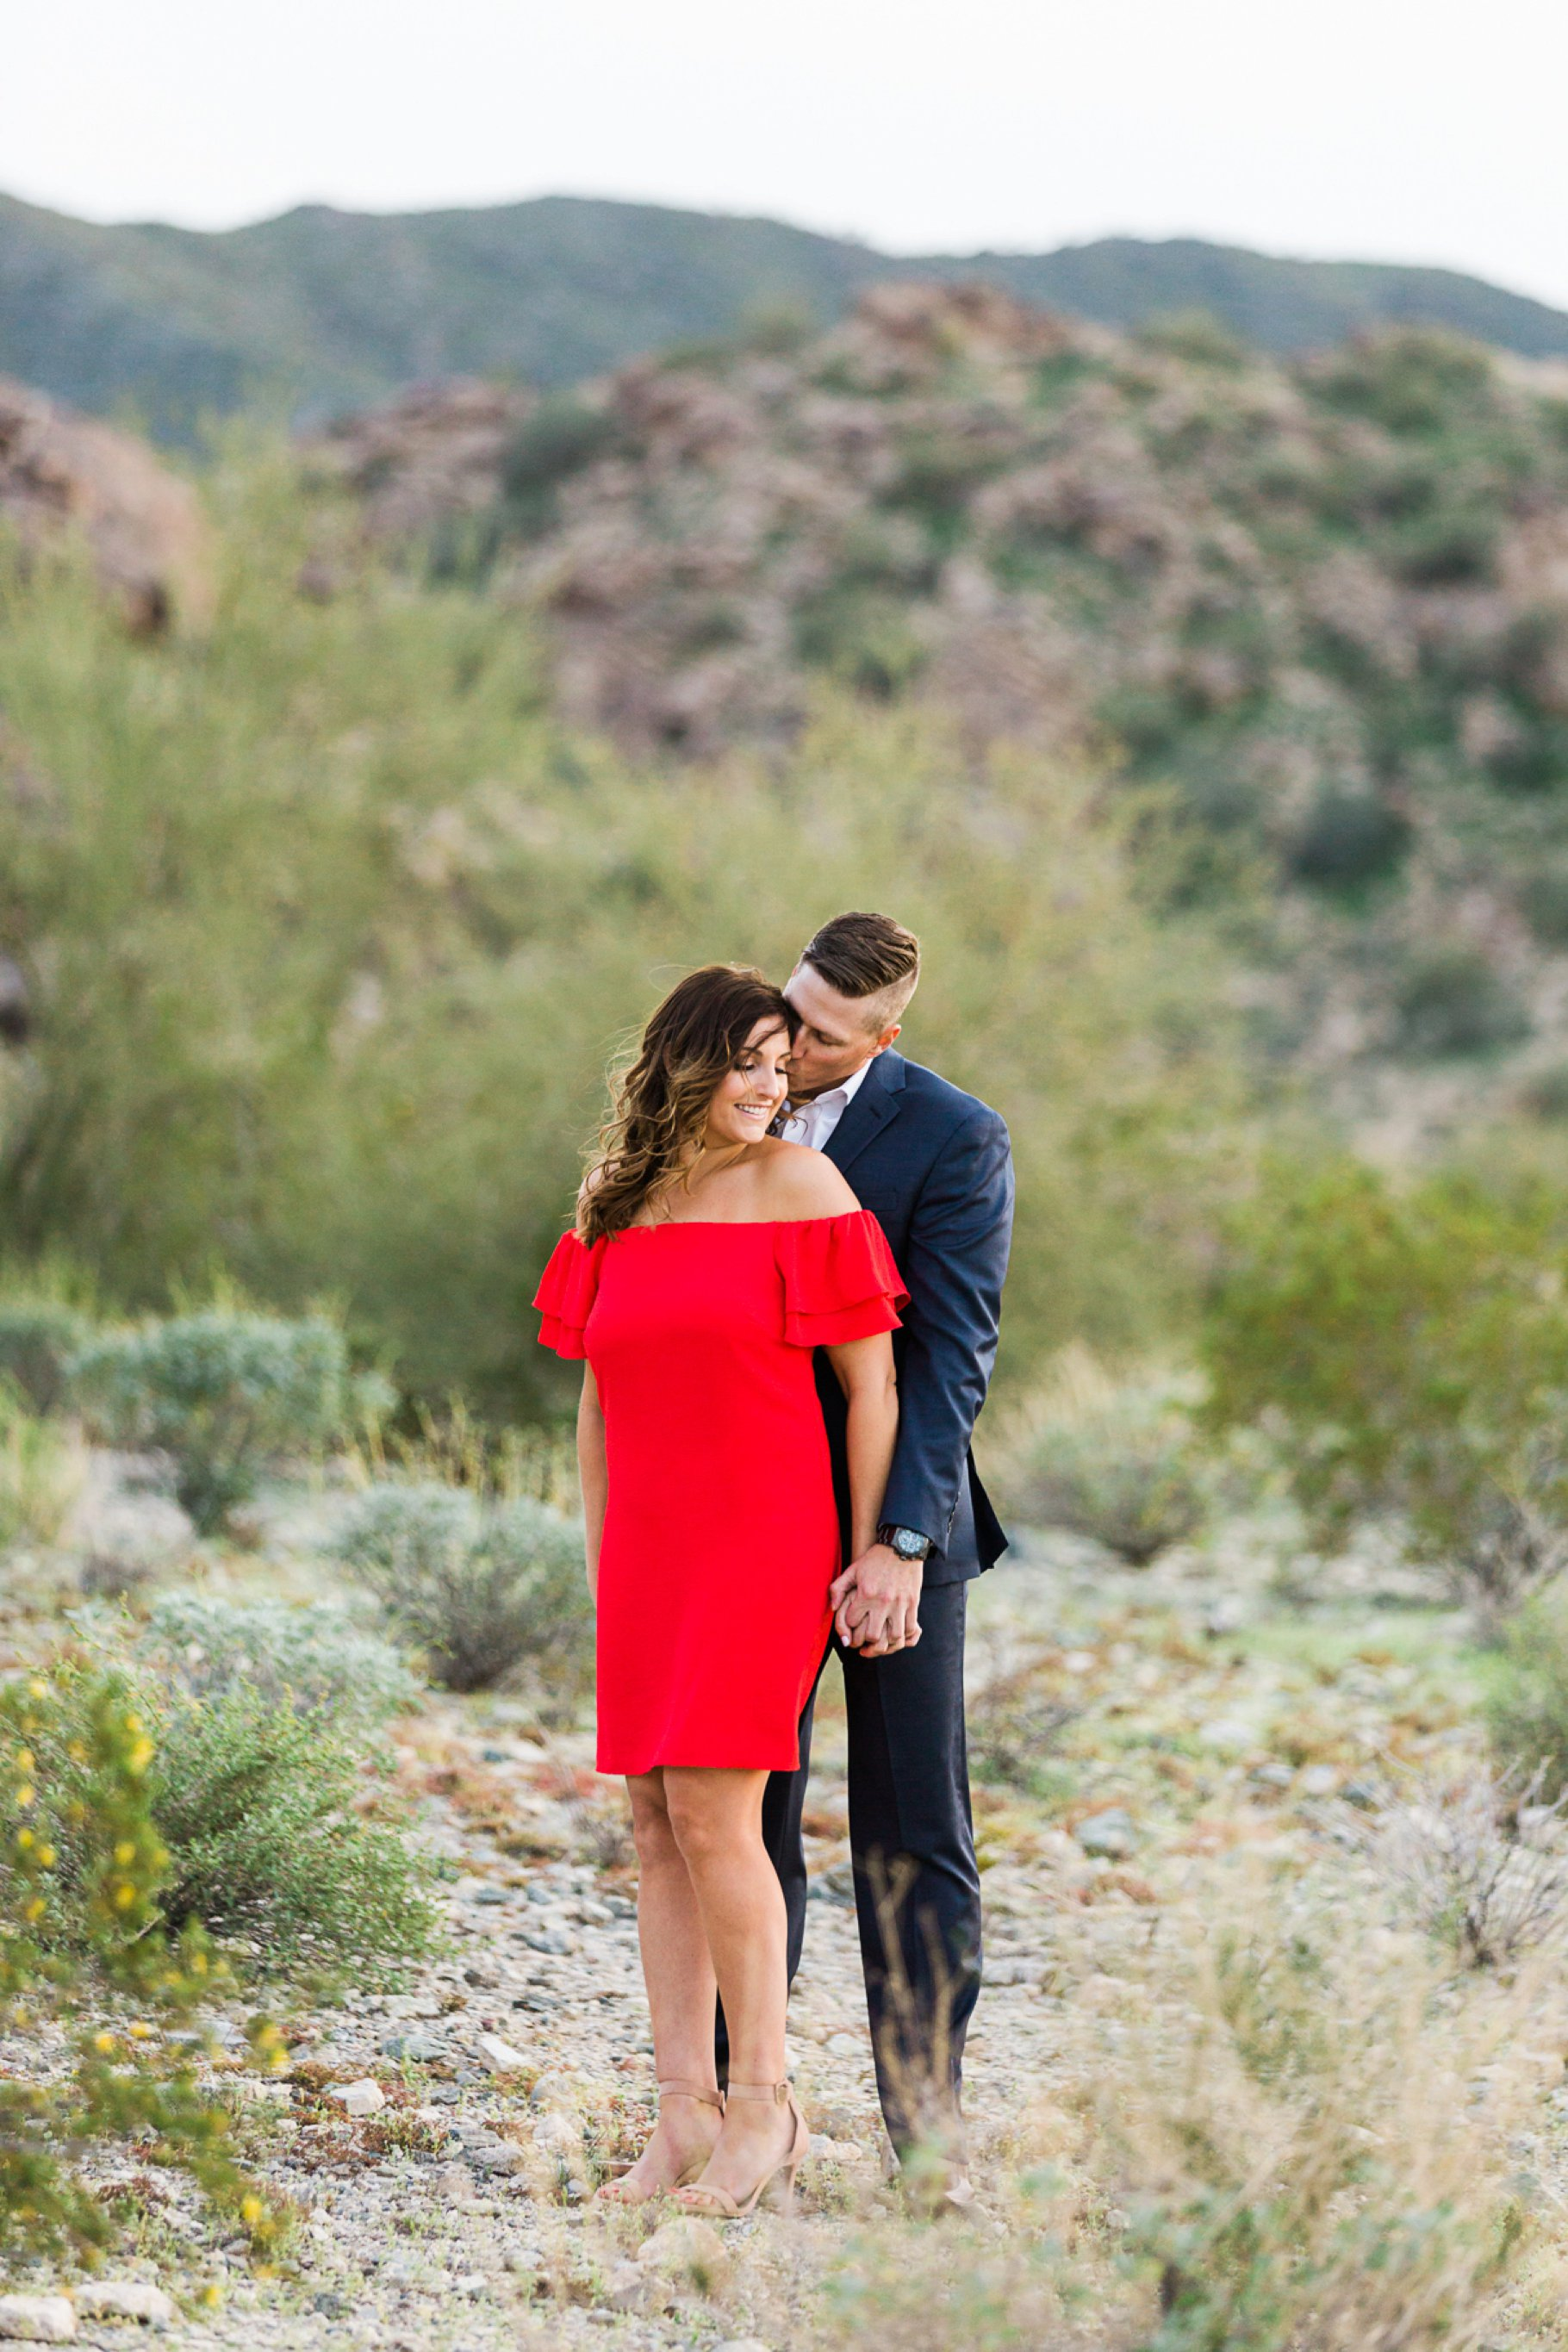 engagment-003_GRETCHEN WAKEMAN PHOTOGRAPHY.jpg